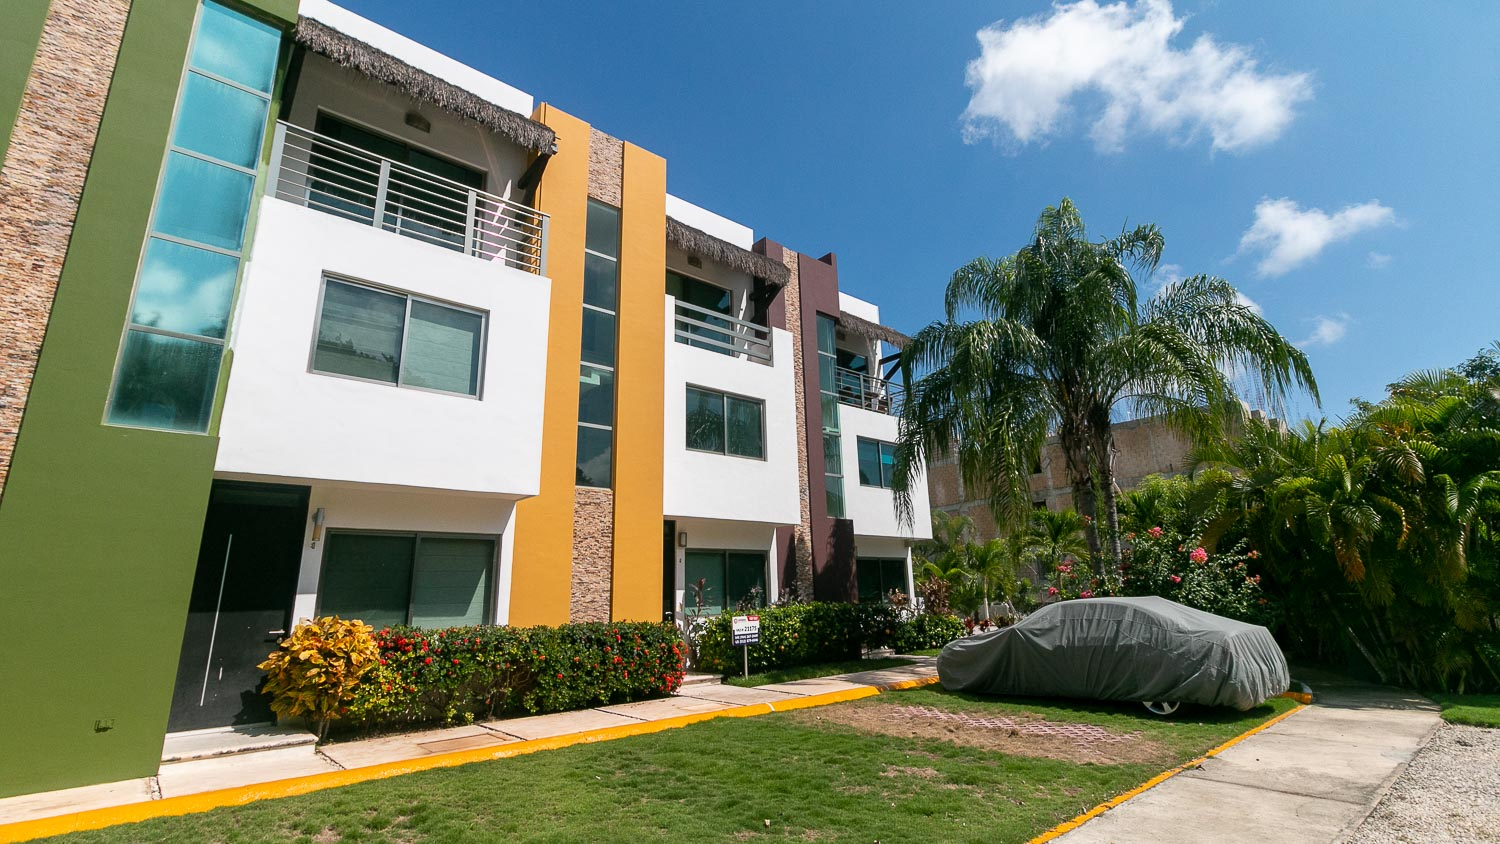 3 bedroom condo in Cielo Residential